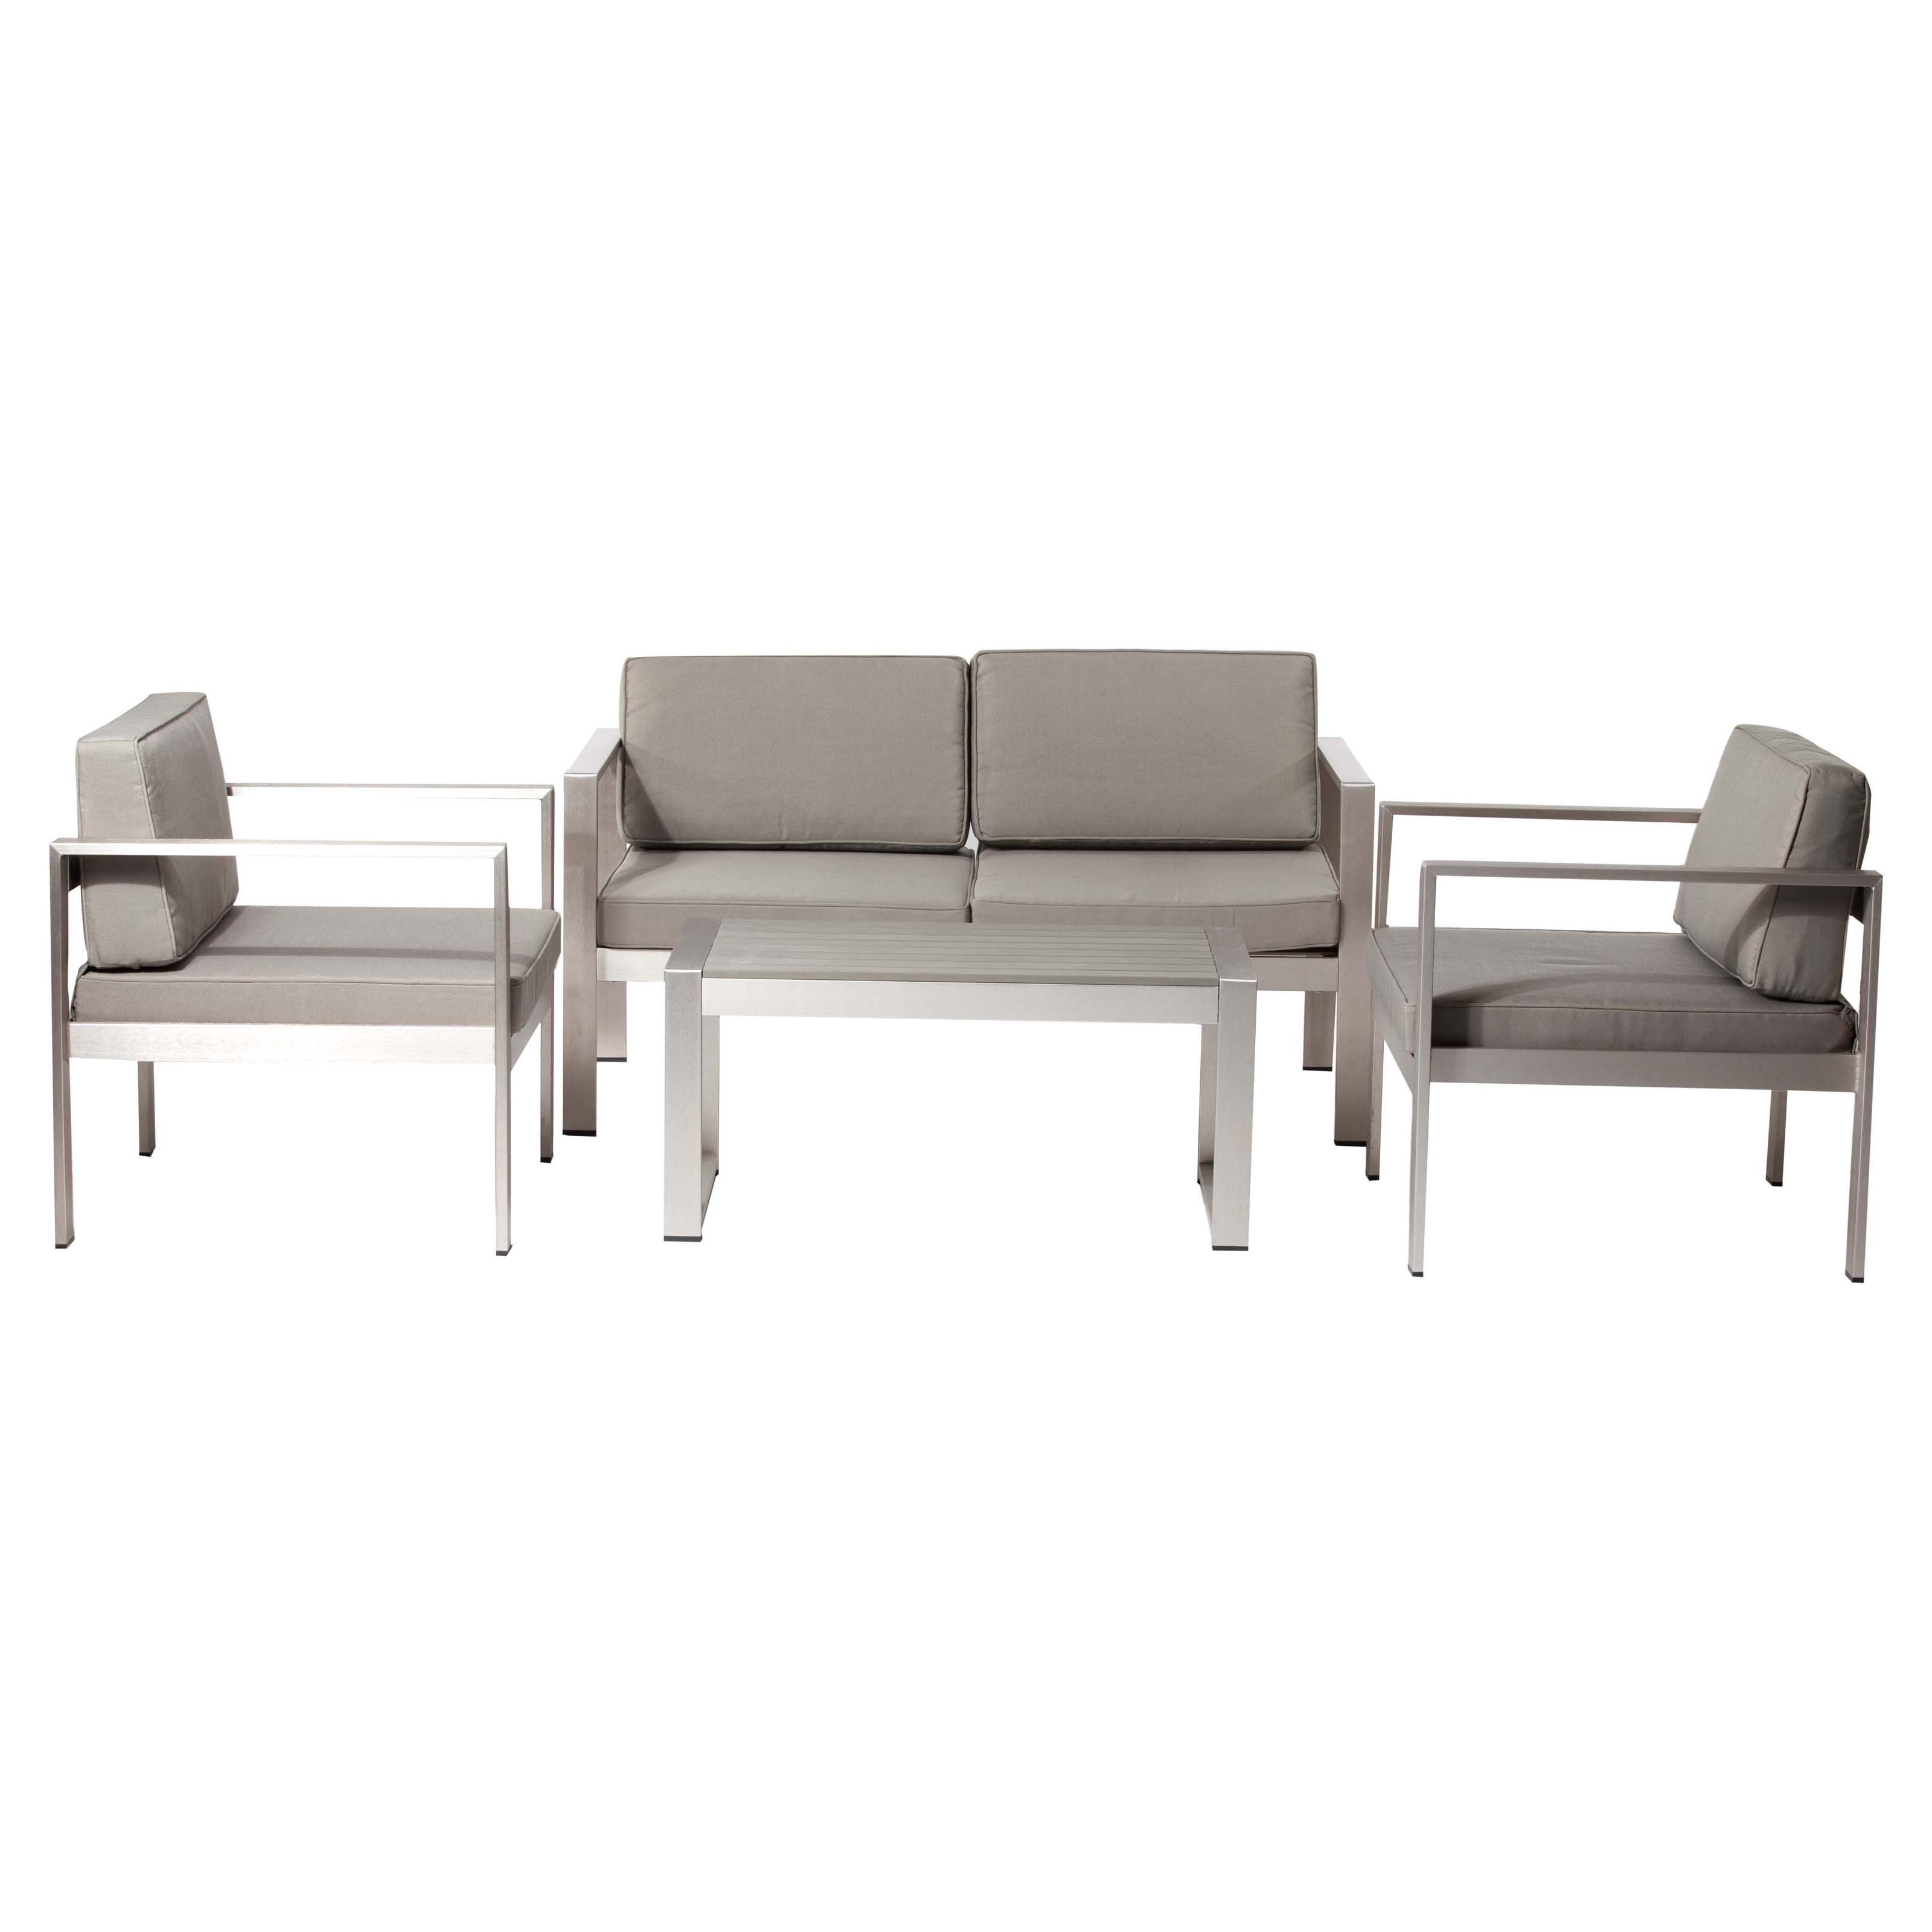 Pangea Outdoor Karen Aluminum 4 Piece Patio Conversation Set